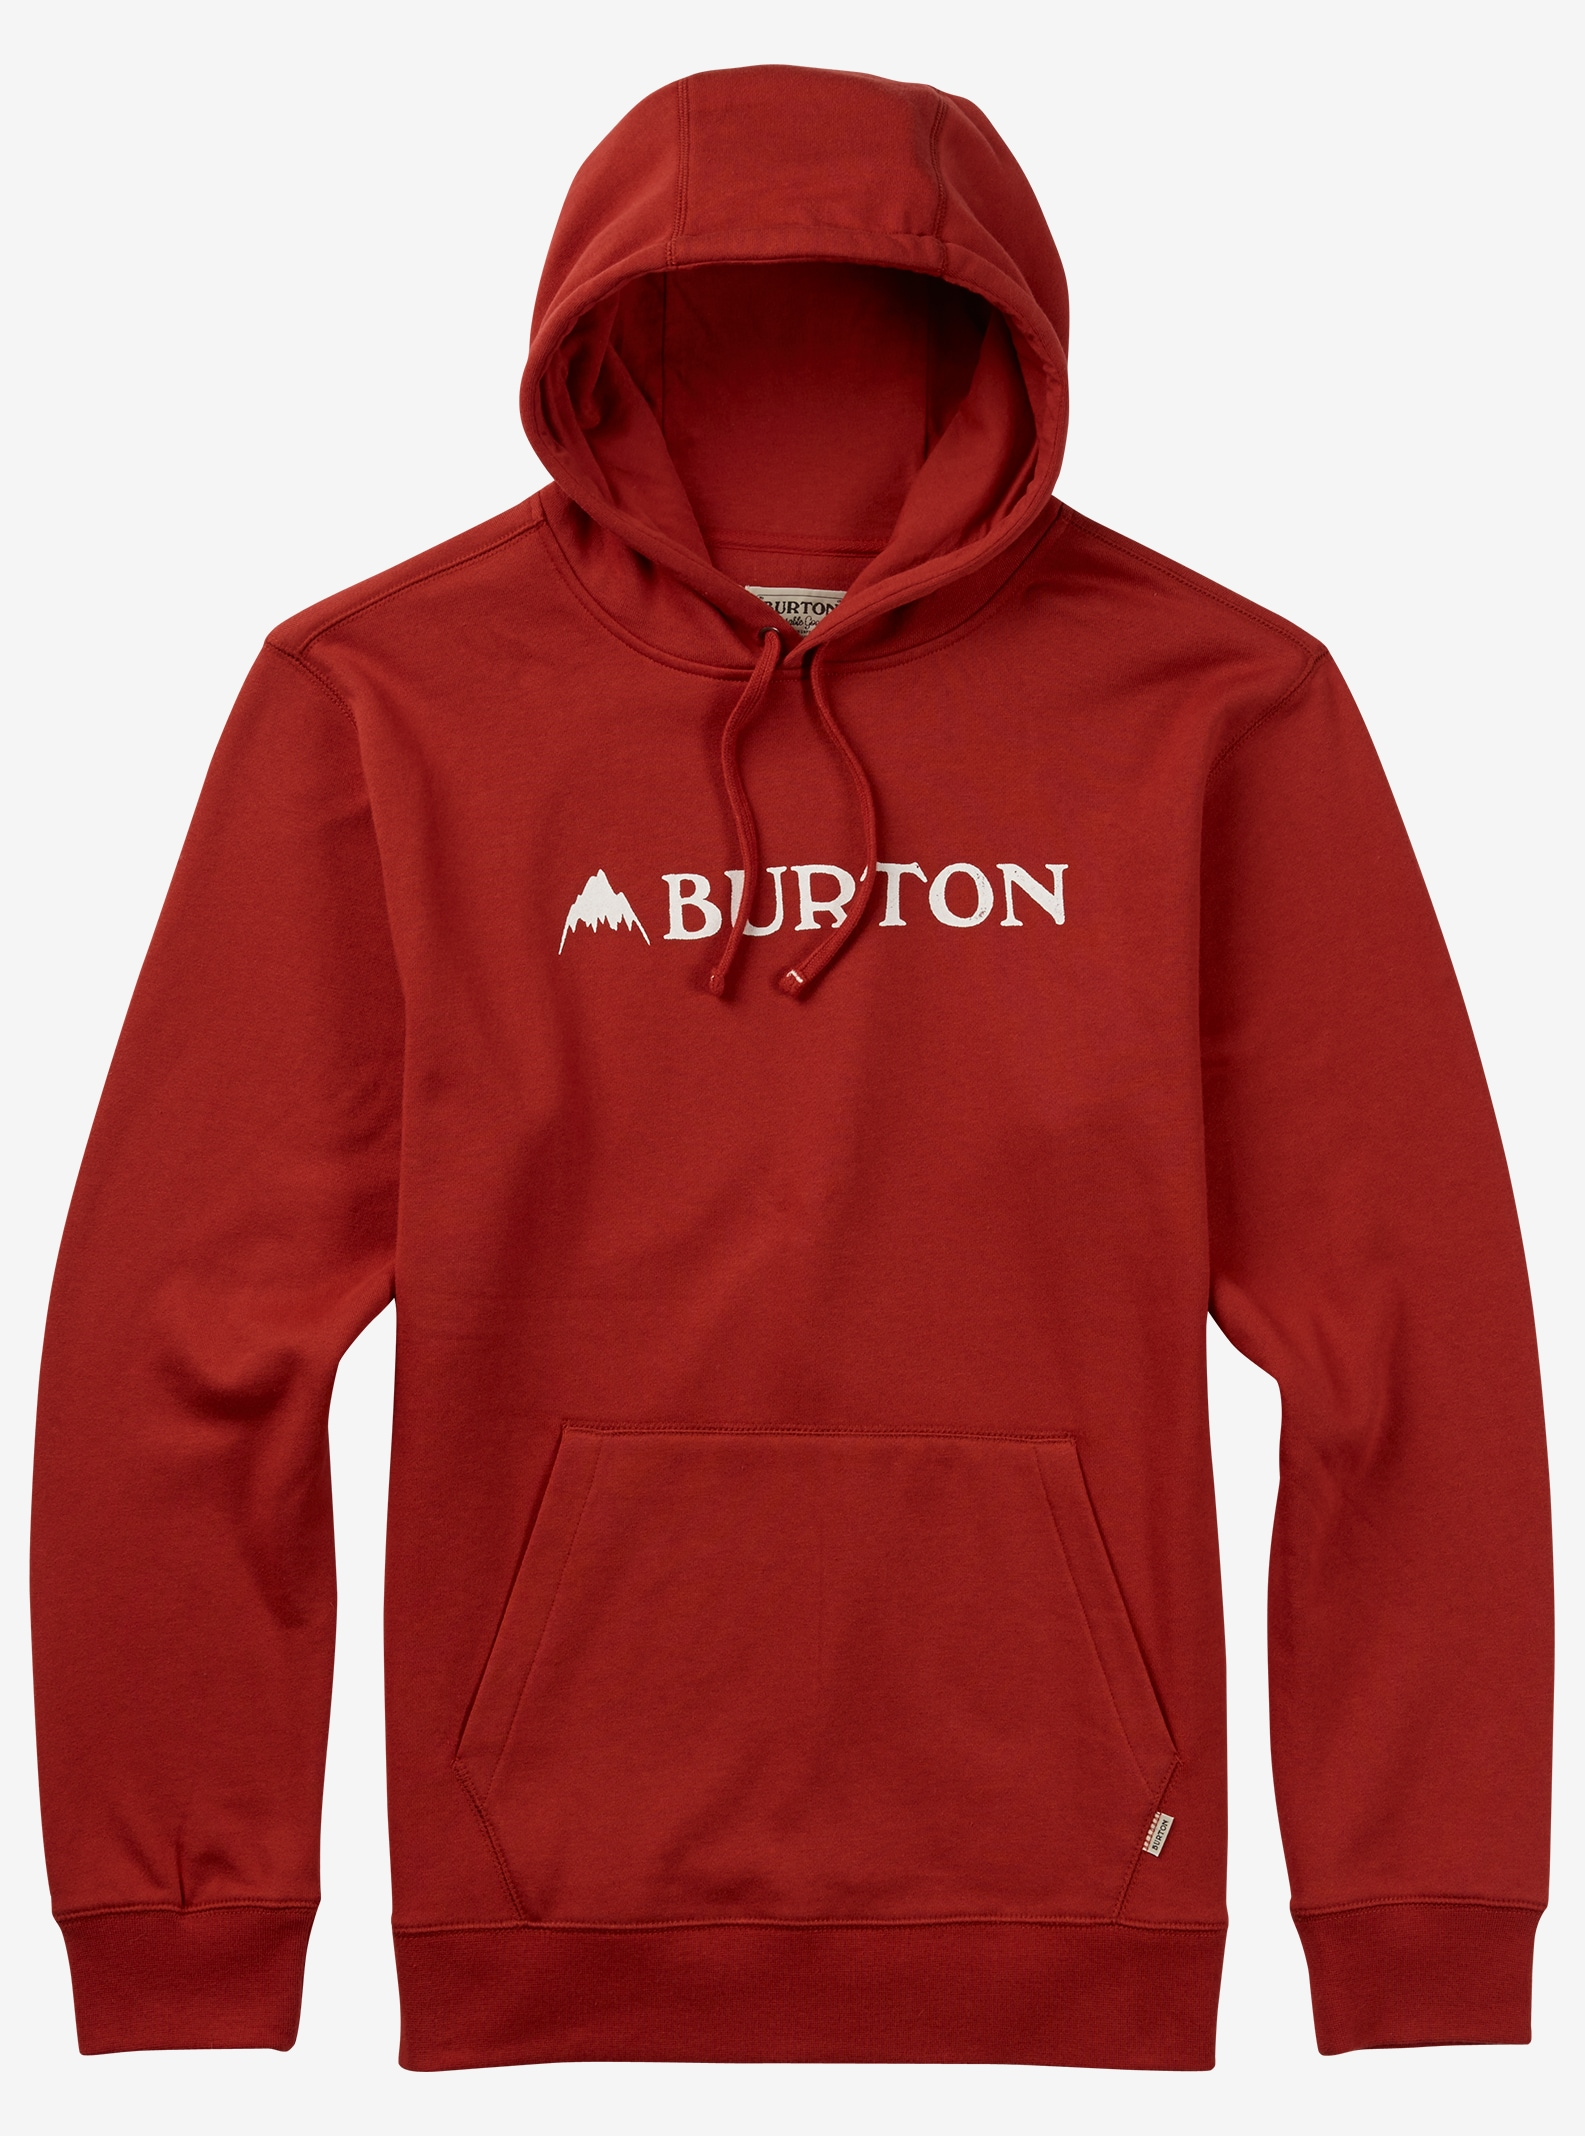 Burton Mountain Horizontal Pullover Hoodie shown in Tandori